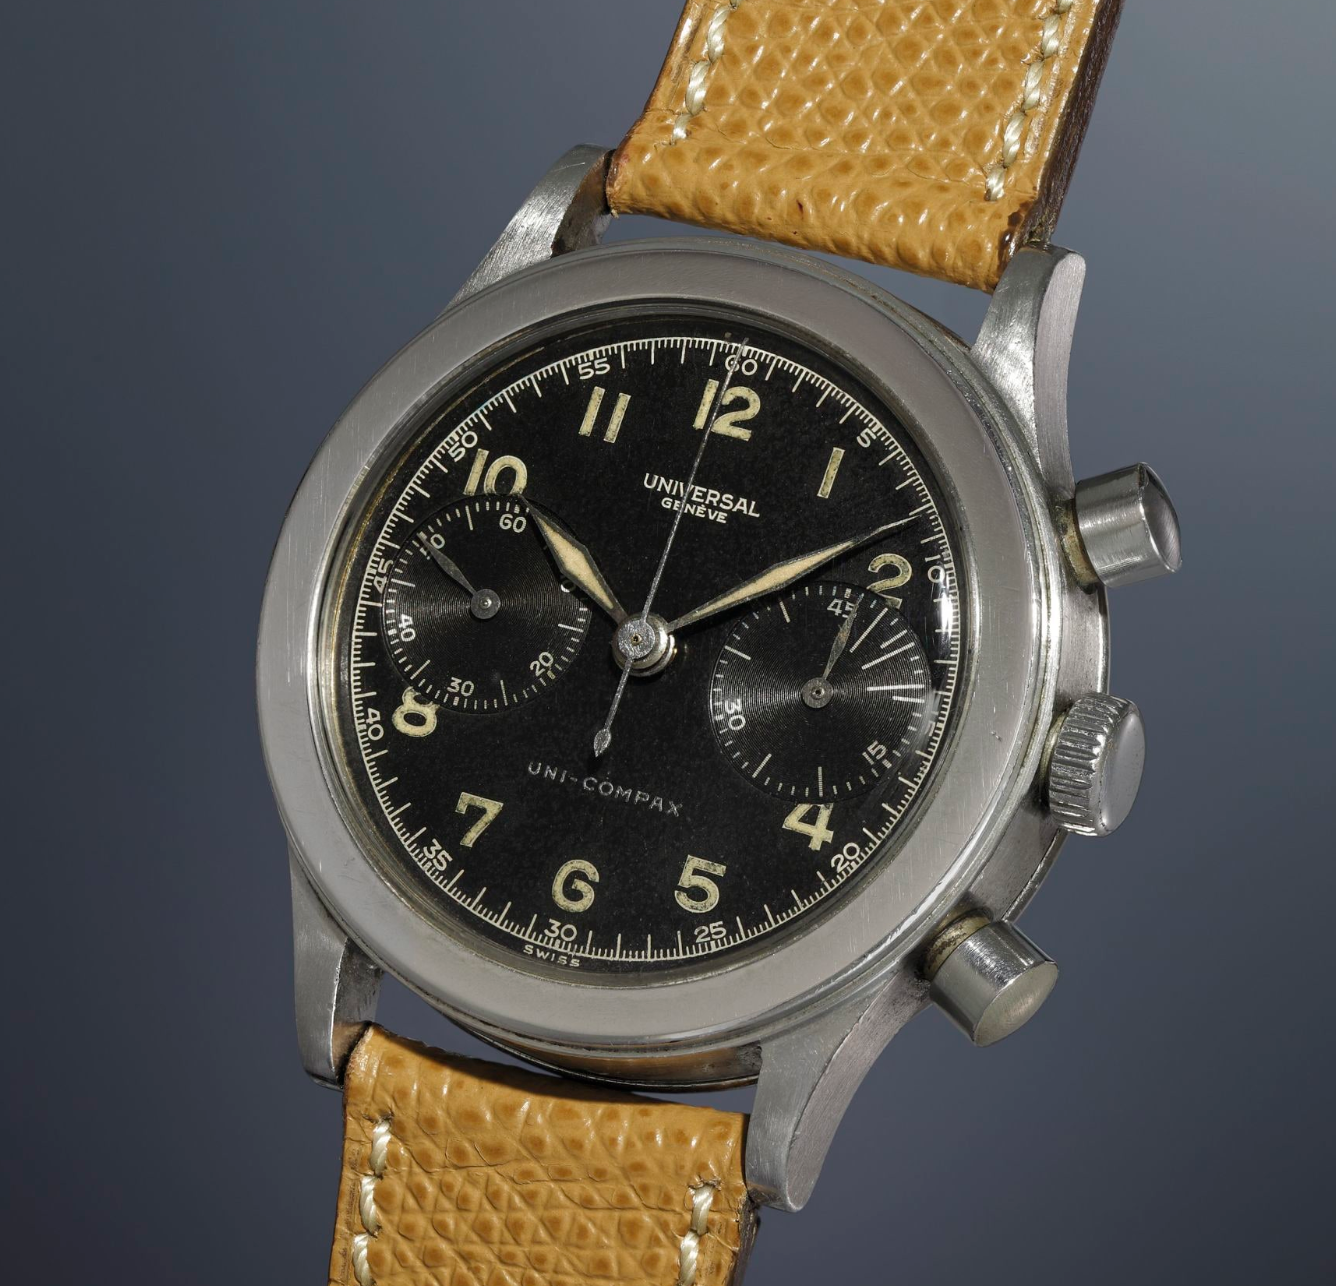 An early waterproof Uni-Compax ref. 7065 by @Phillips